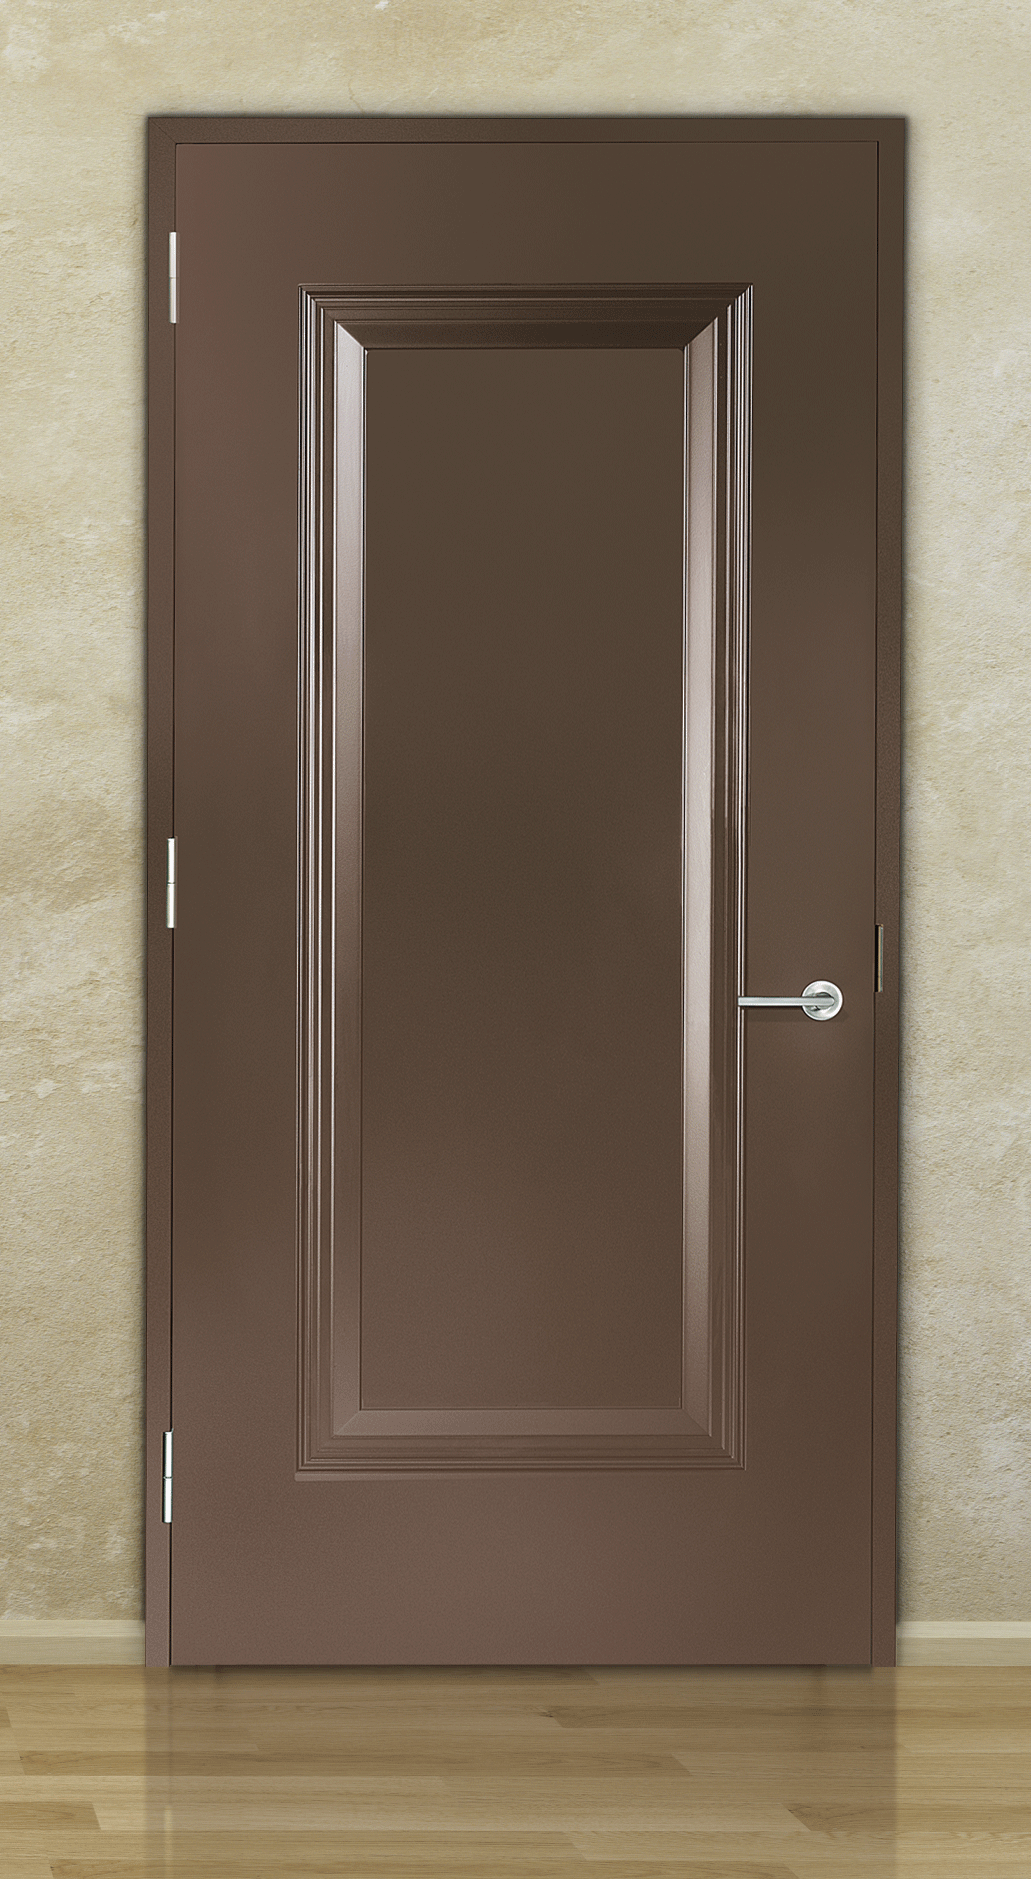 HD 1 Panel High Definition 1 Panel Embossed Doors